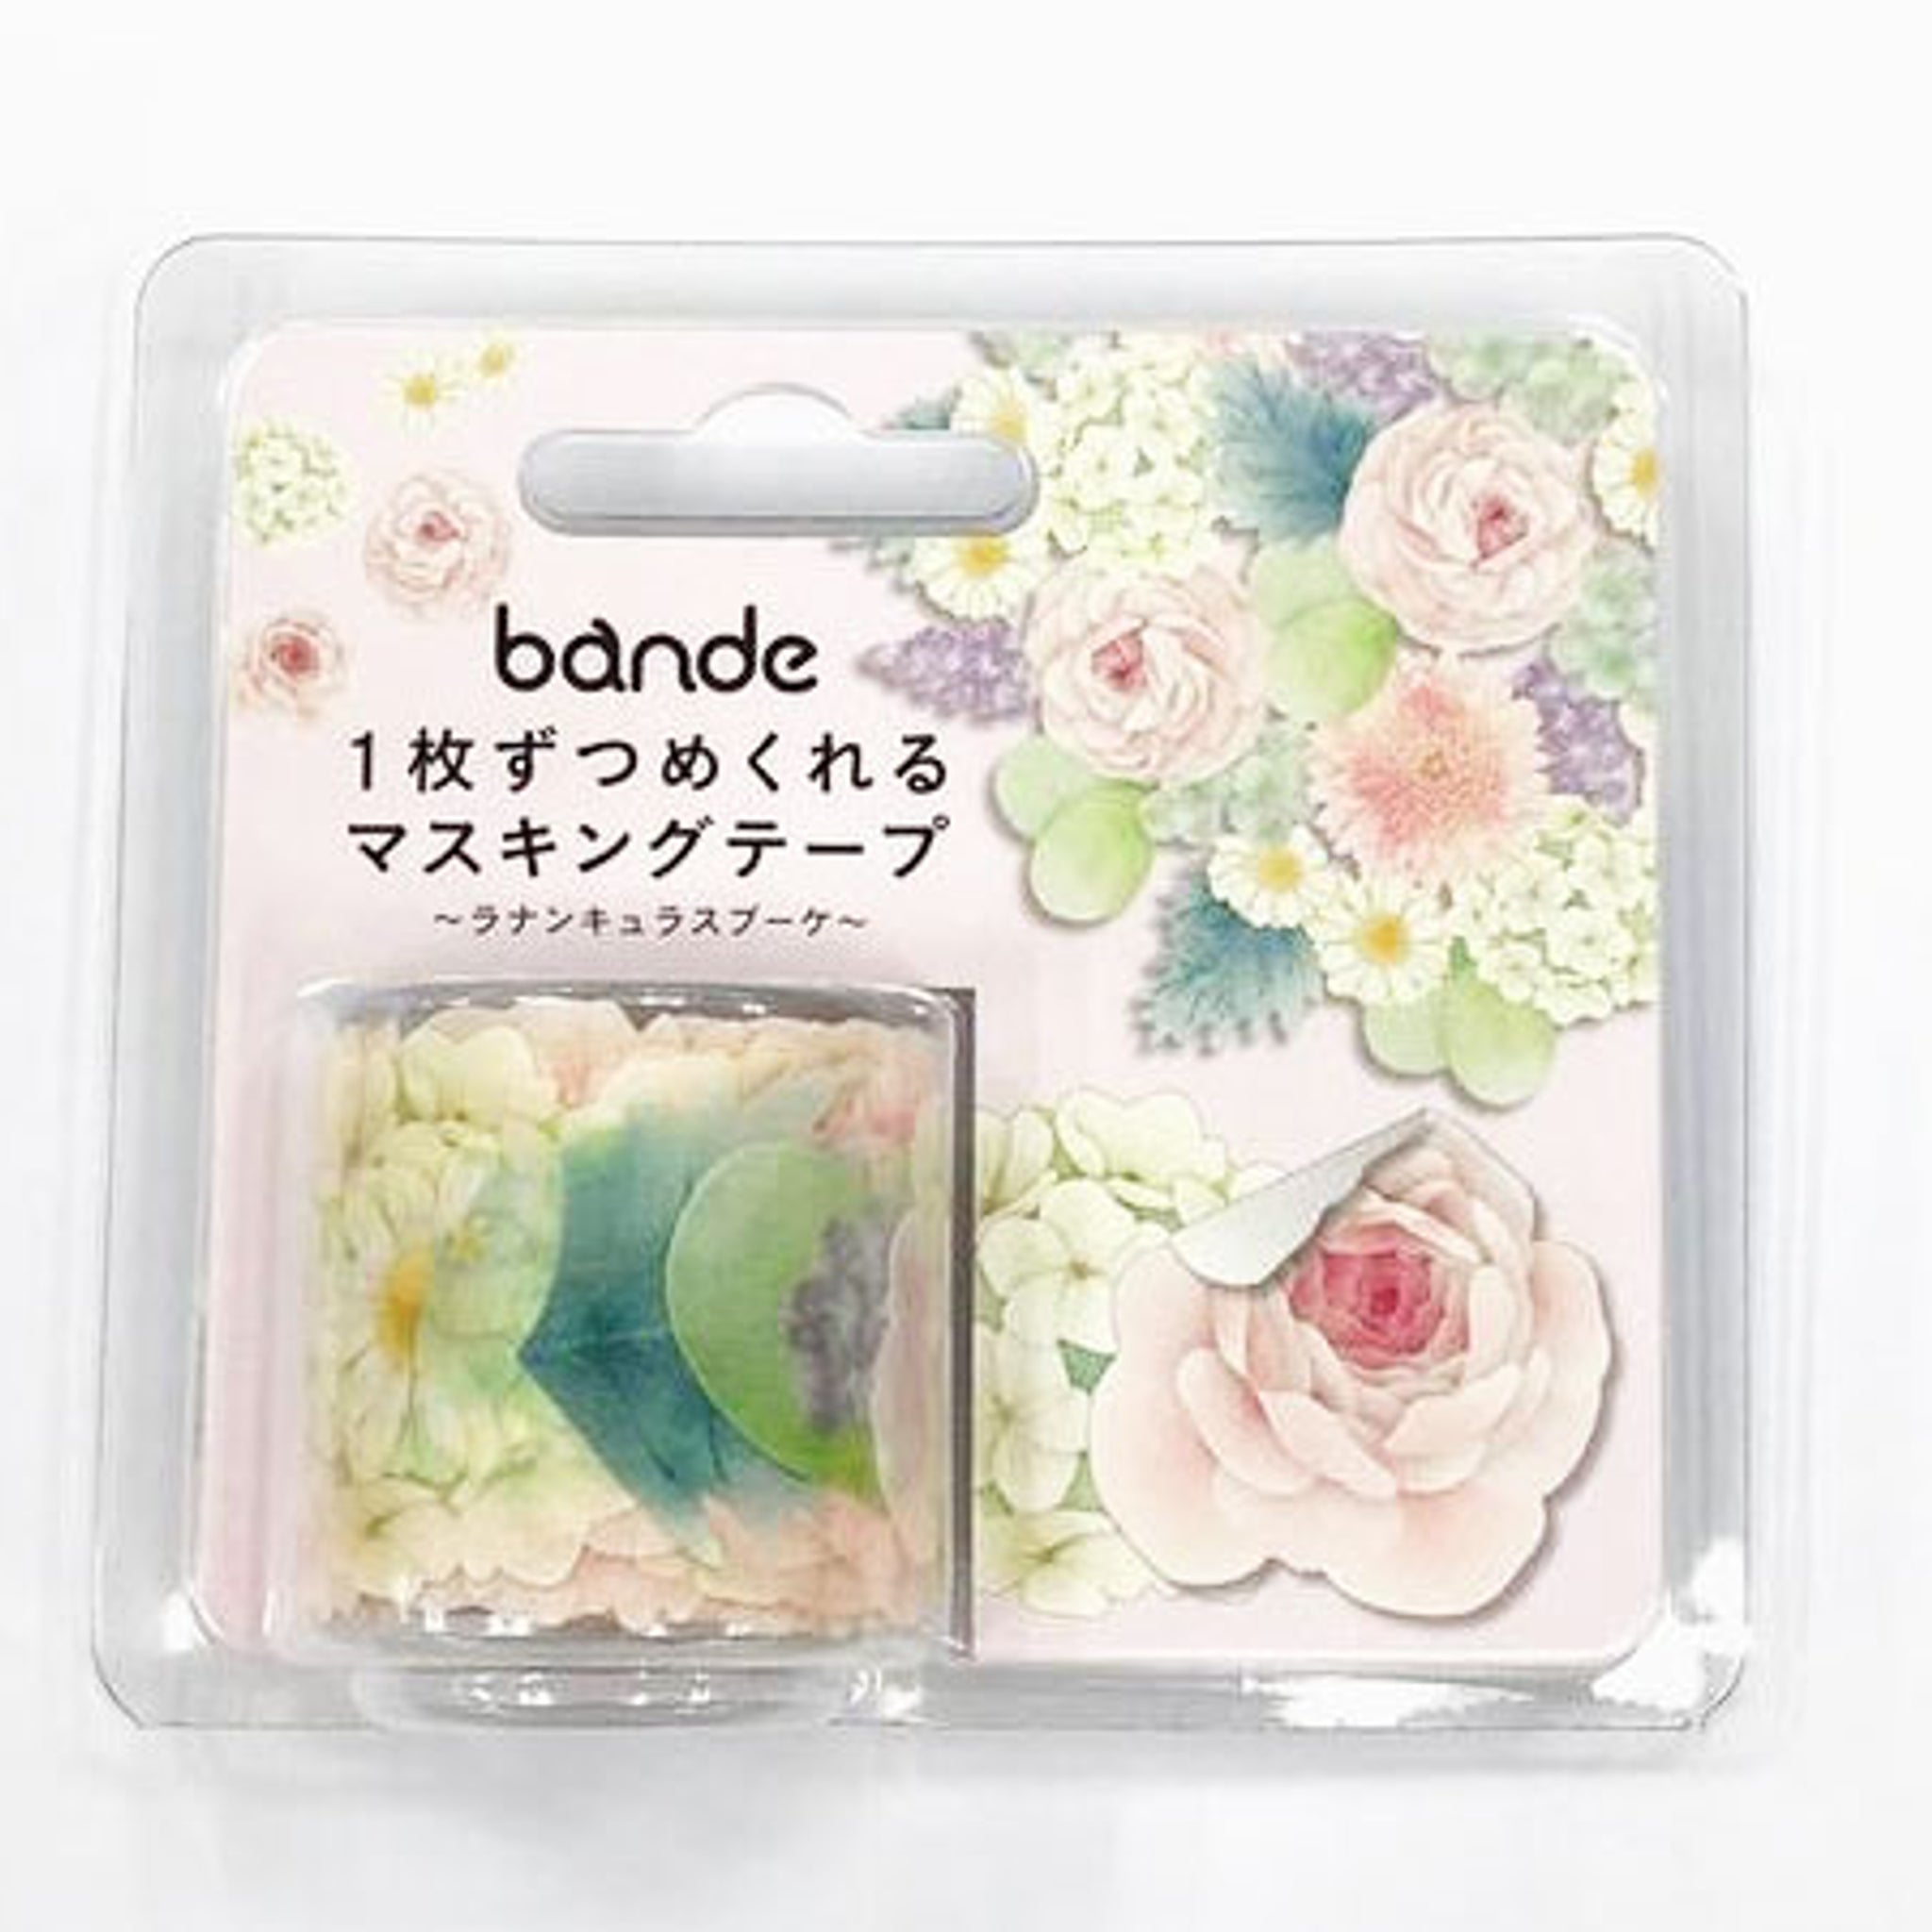 Bande Ranunculus Bouquet Washi Roll Sticker